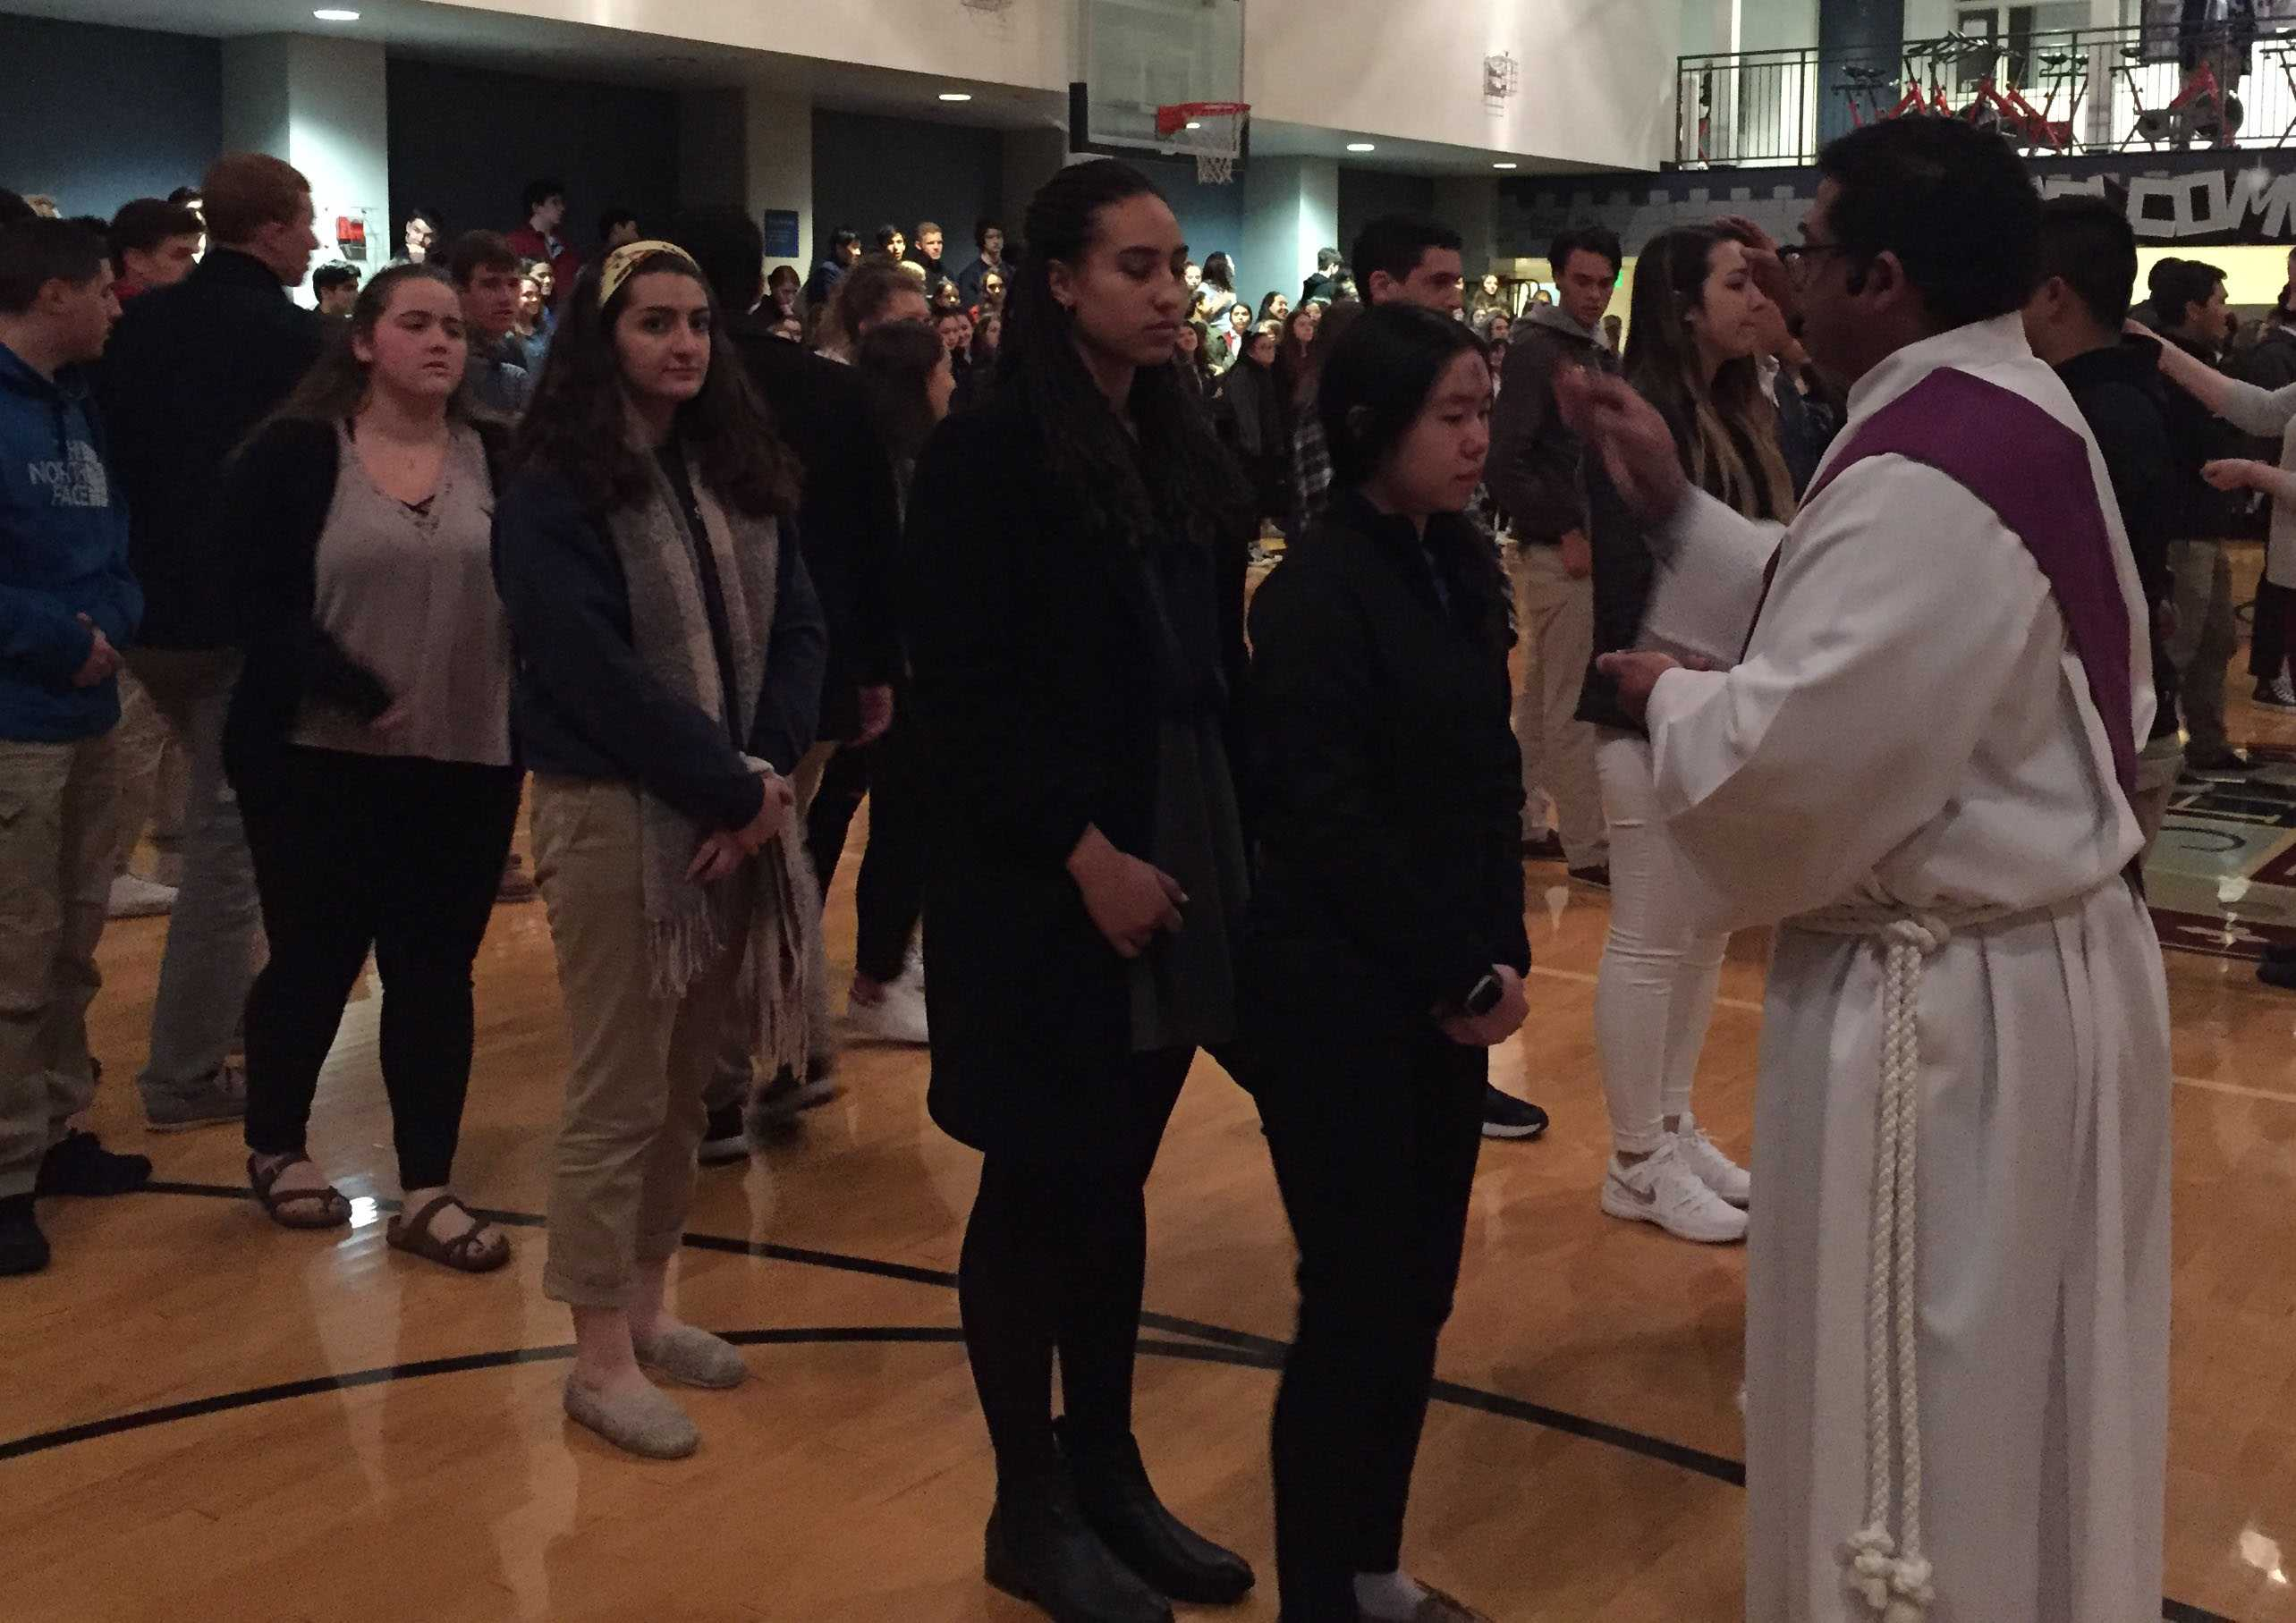 Senior Sarah Hong receives ashes from celebrant Eddy Gutierrez in  The Dungeon. Convent students were transported to Stuart Hall on school buses.